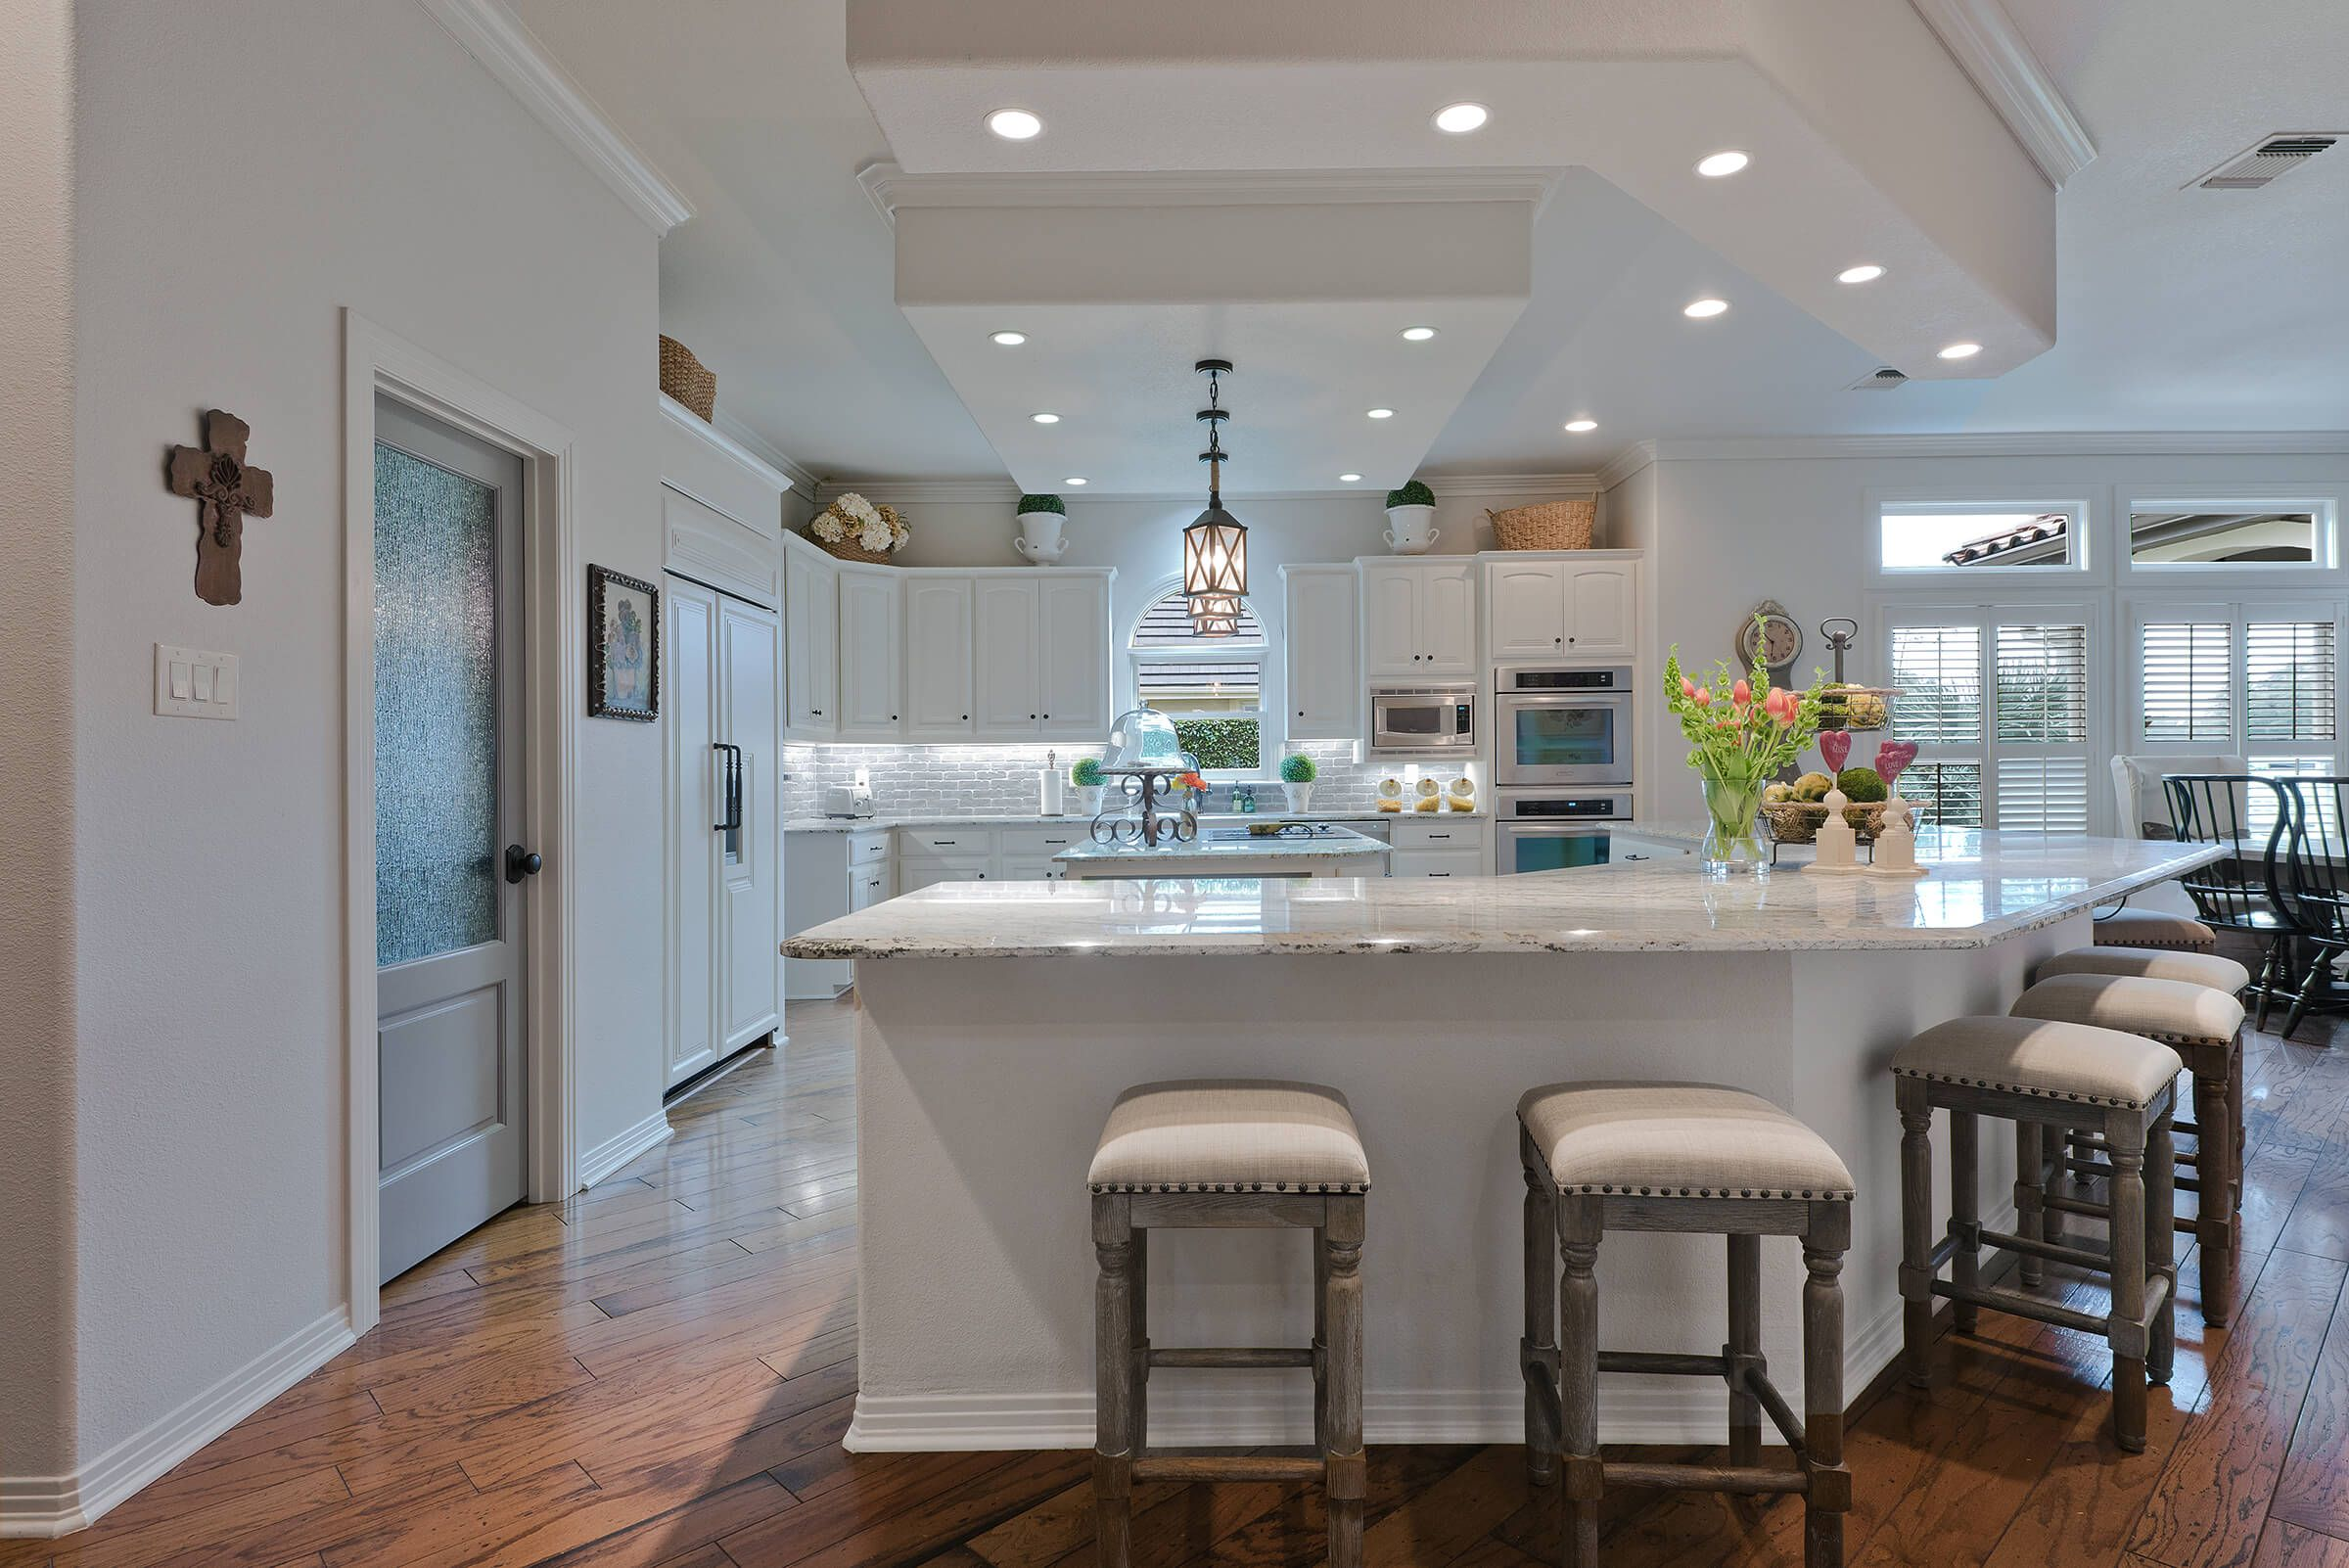 Sonterra Kitchen | Virtuoso Builders San Antonio Full Kitchen Remodel.  210 525 8750